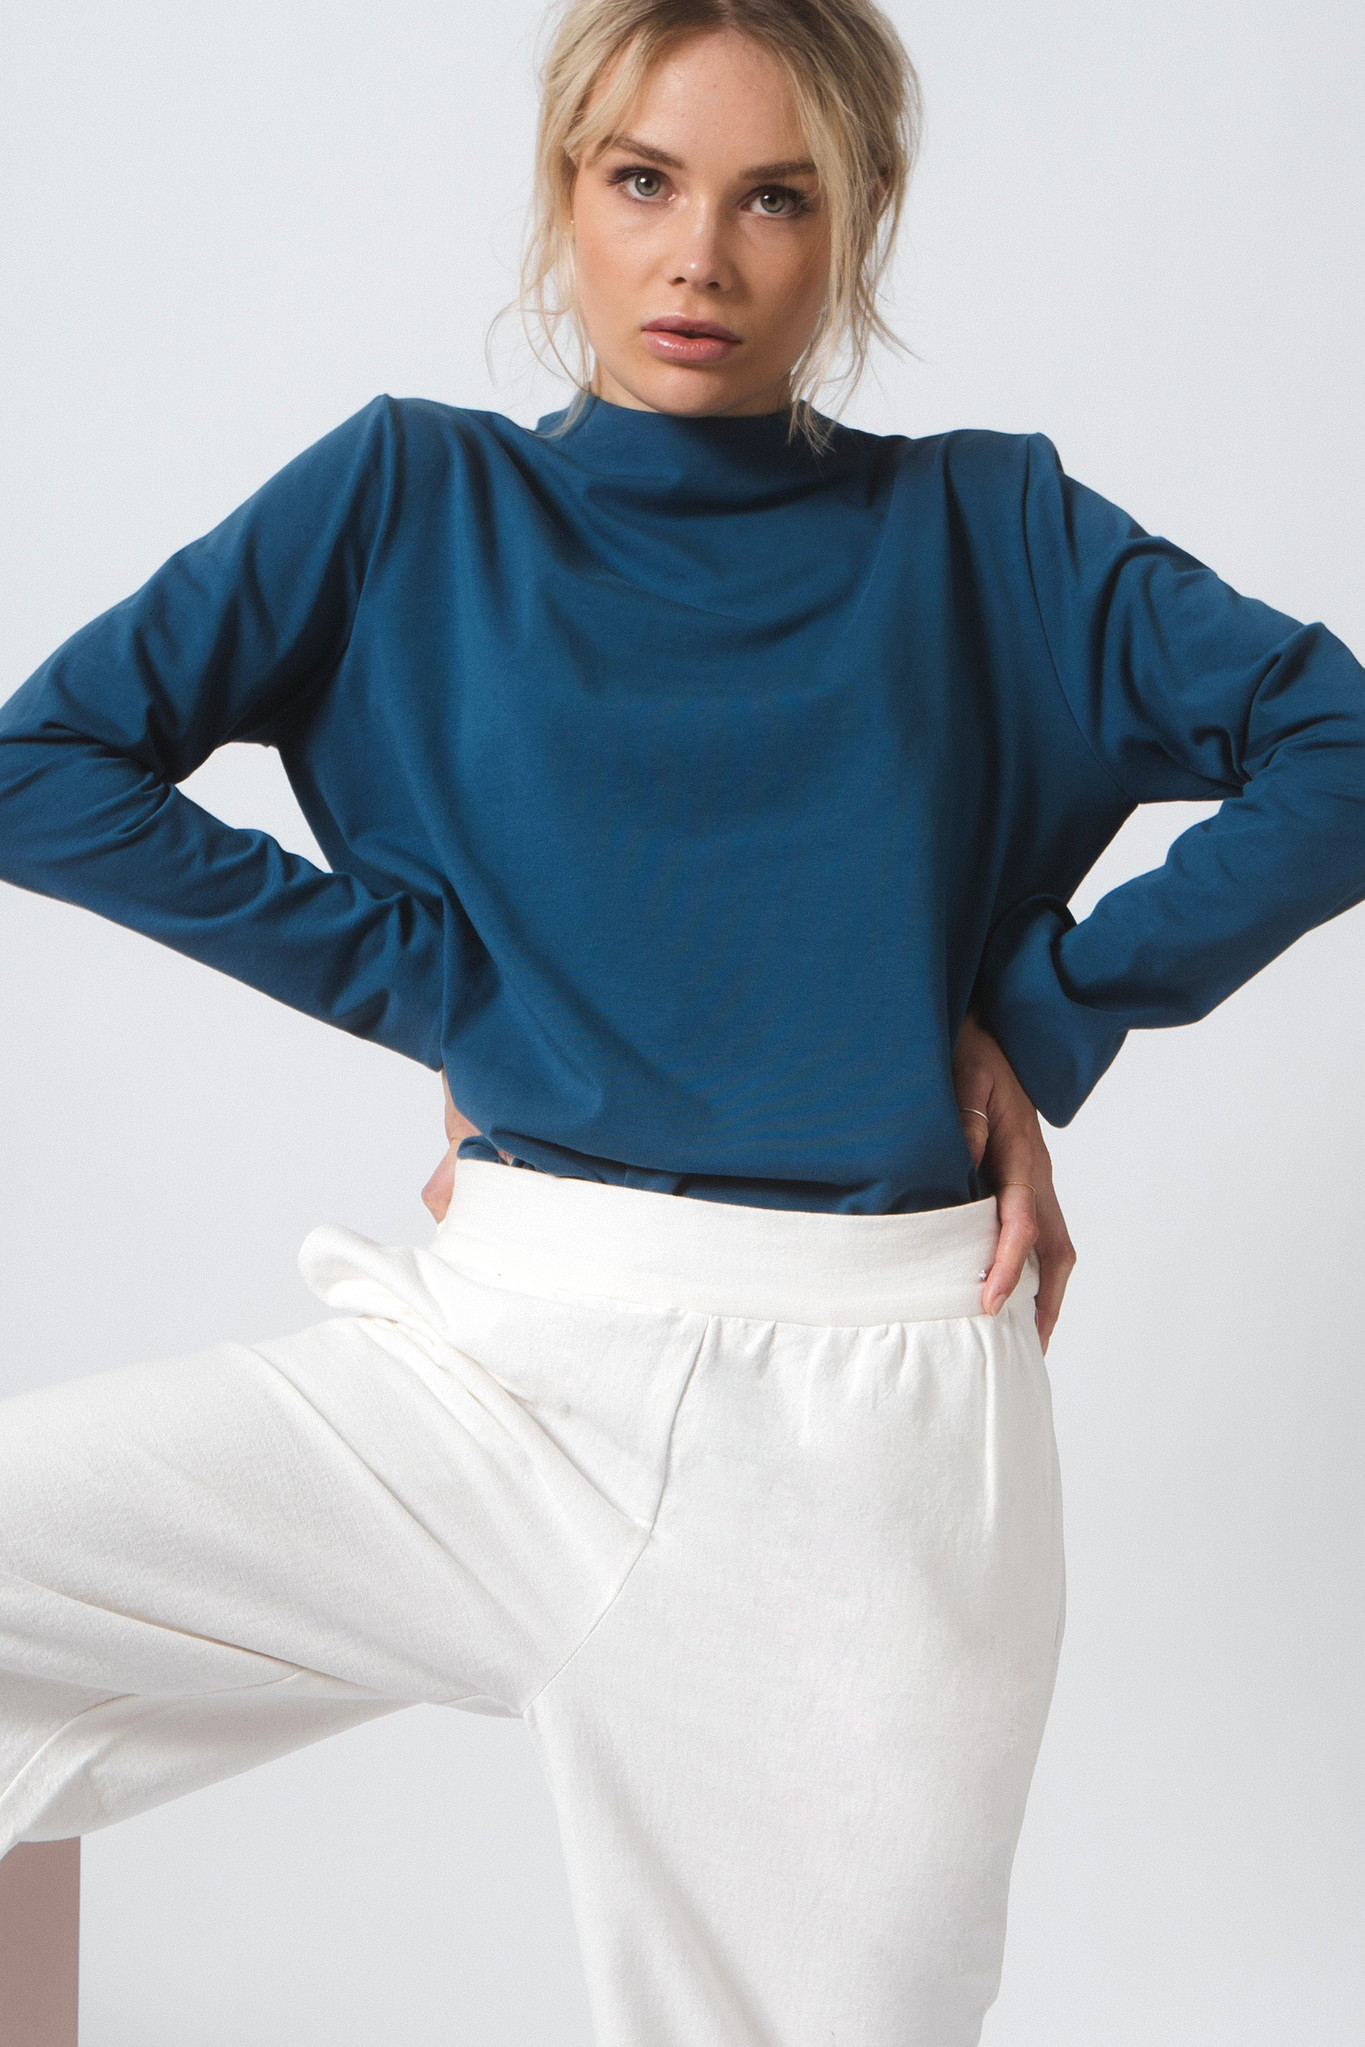 Shirt with back detail made of organic jersey - petrol-1